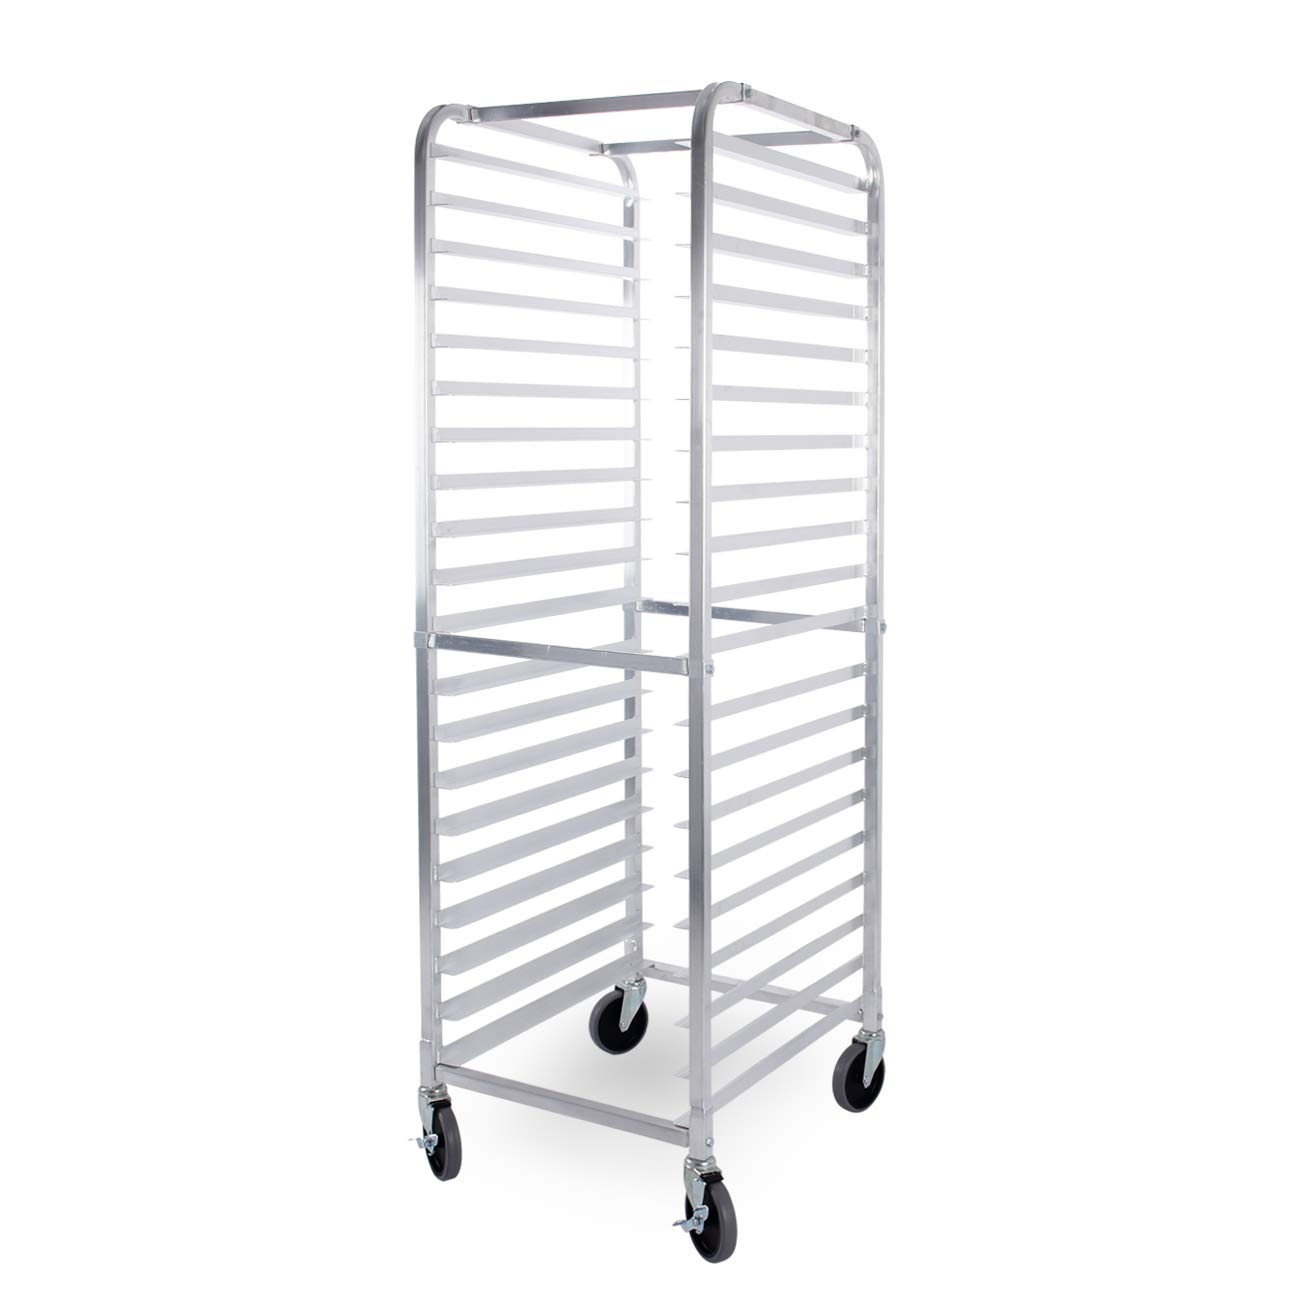 ARKSEN Heavy Duty Welded Aluminum Full Height 20 Tier Sheet/Bun Pan Rack with Caster Wheels by ARKSEN